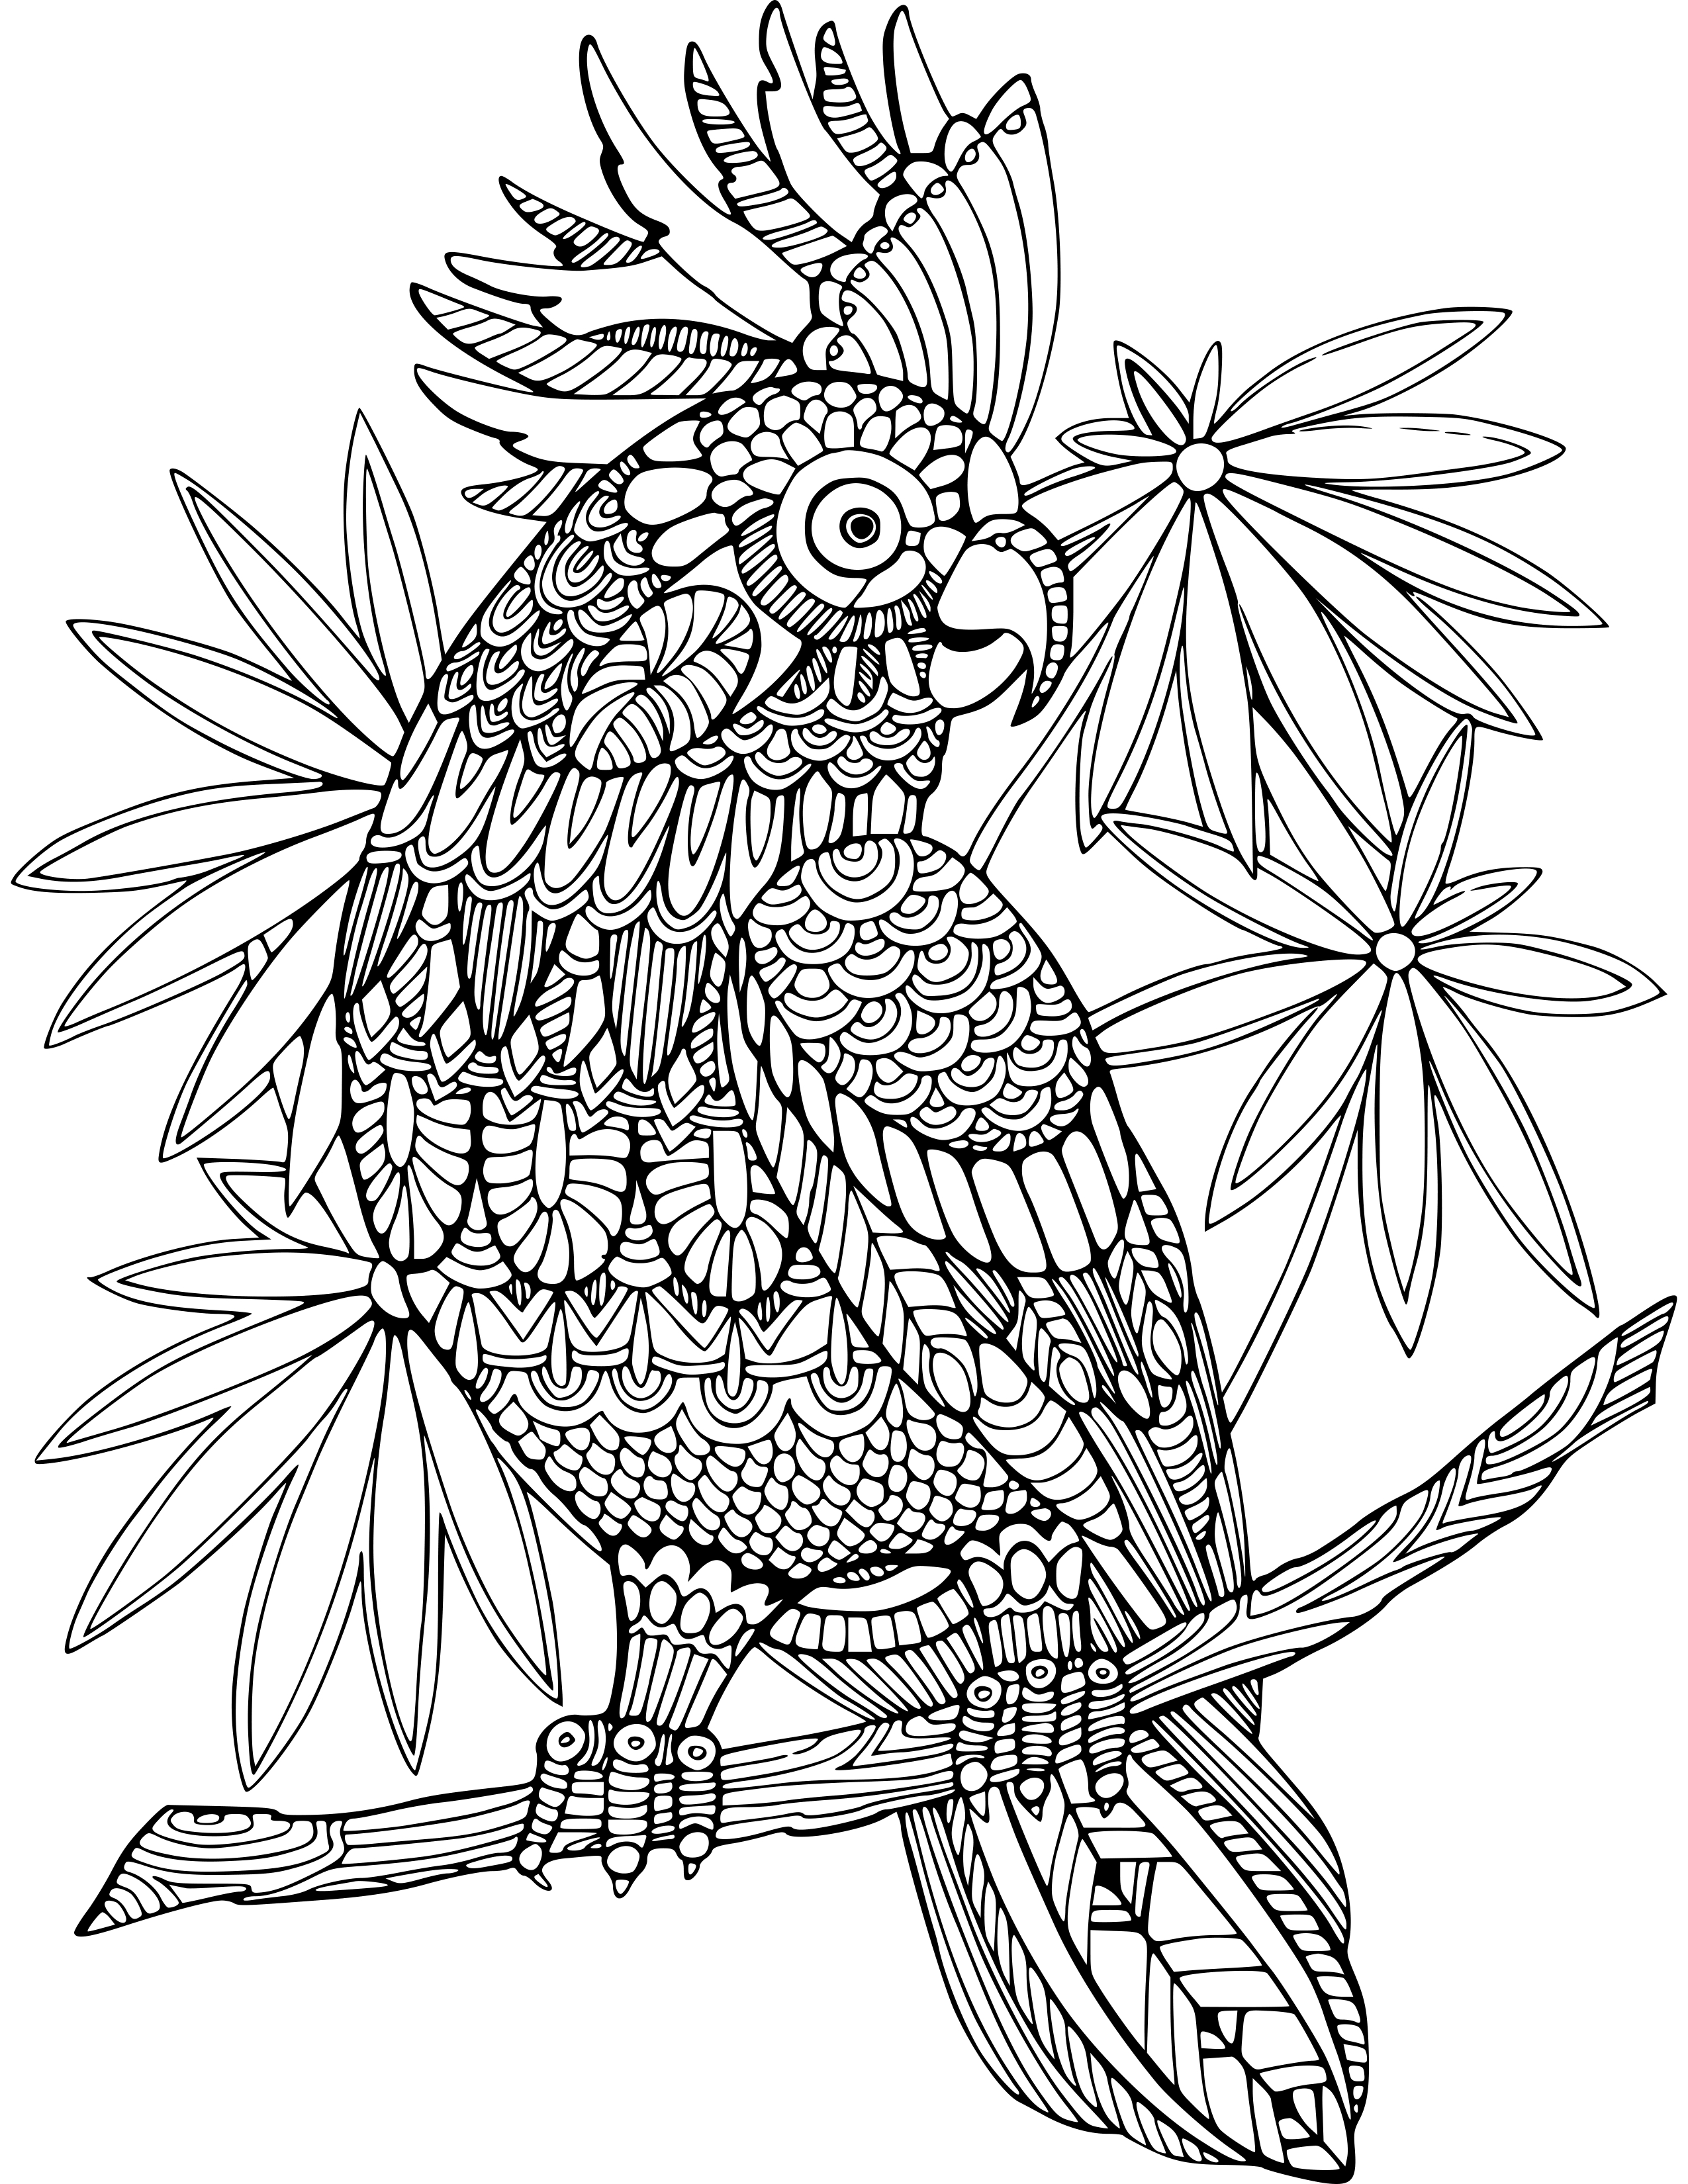 60 Animal Coloring Pages for Adults with Resell Right